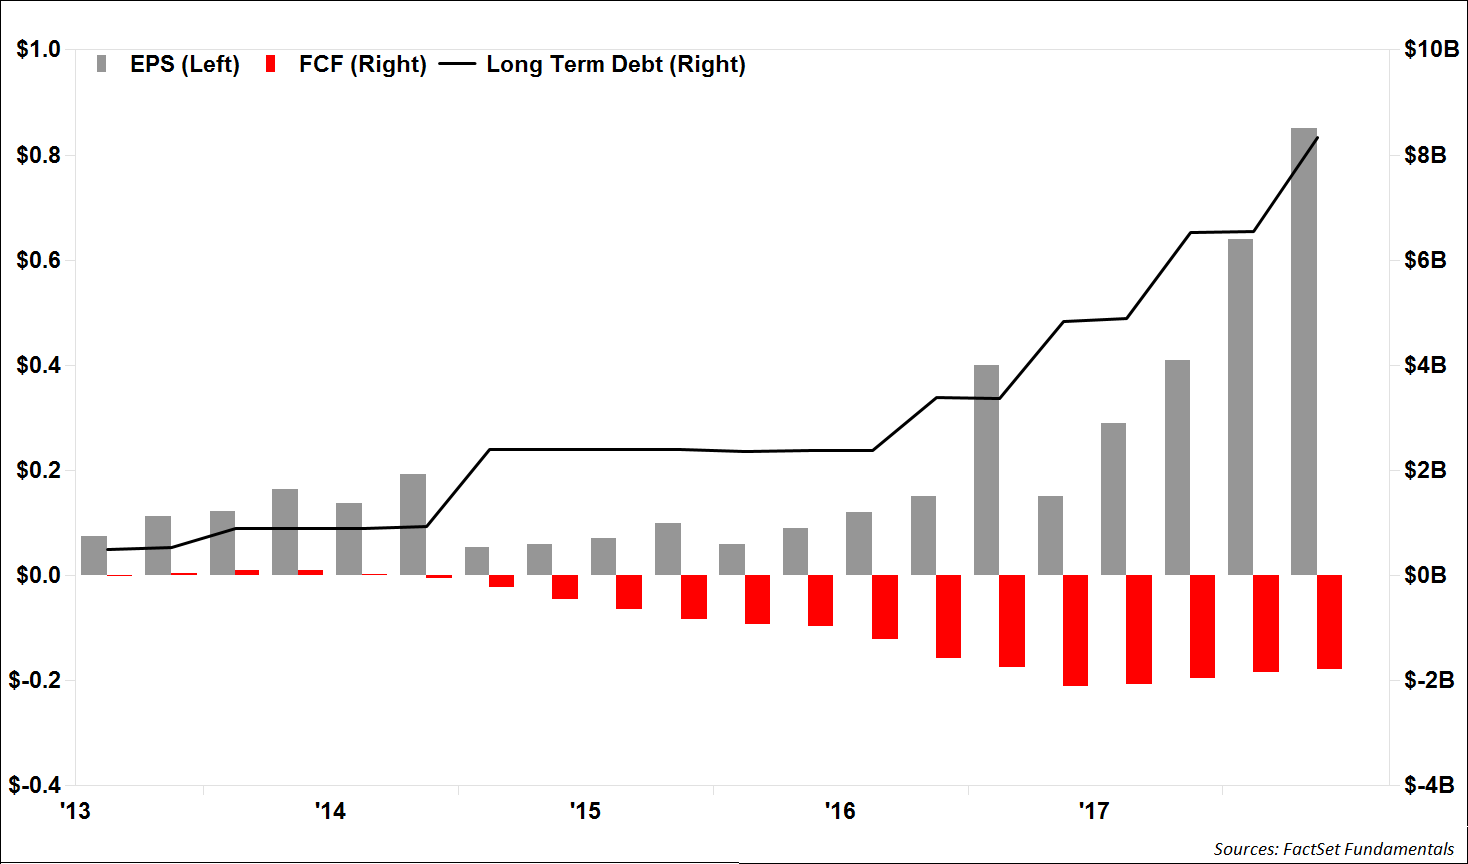 NetFlix Debt Vs EPS